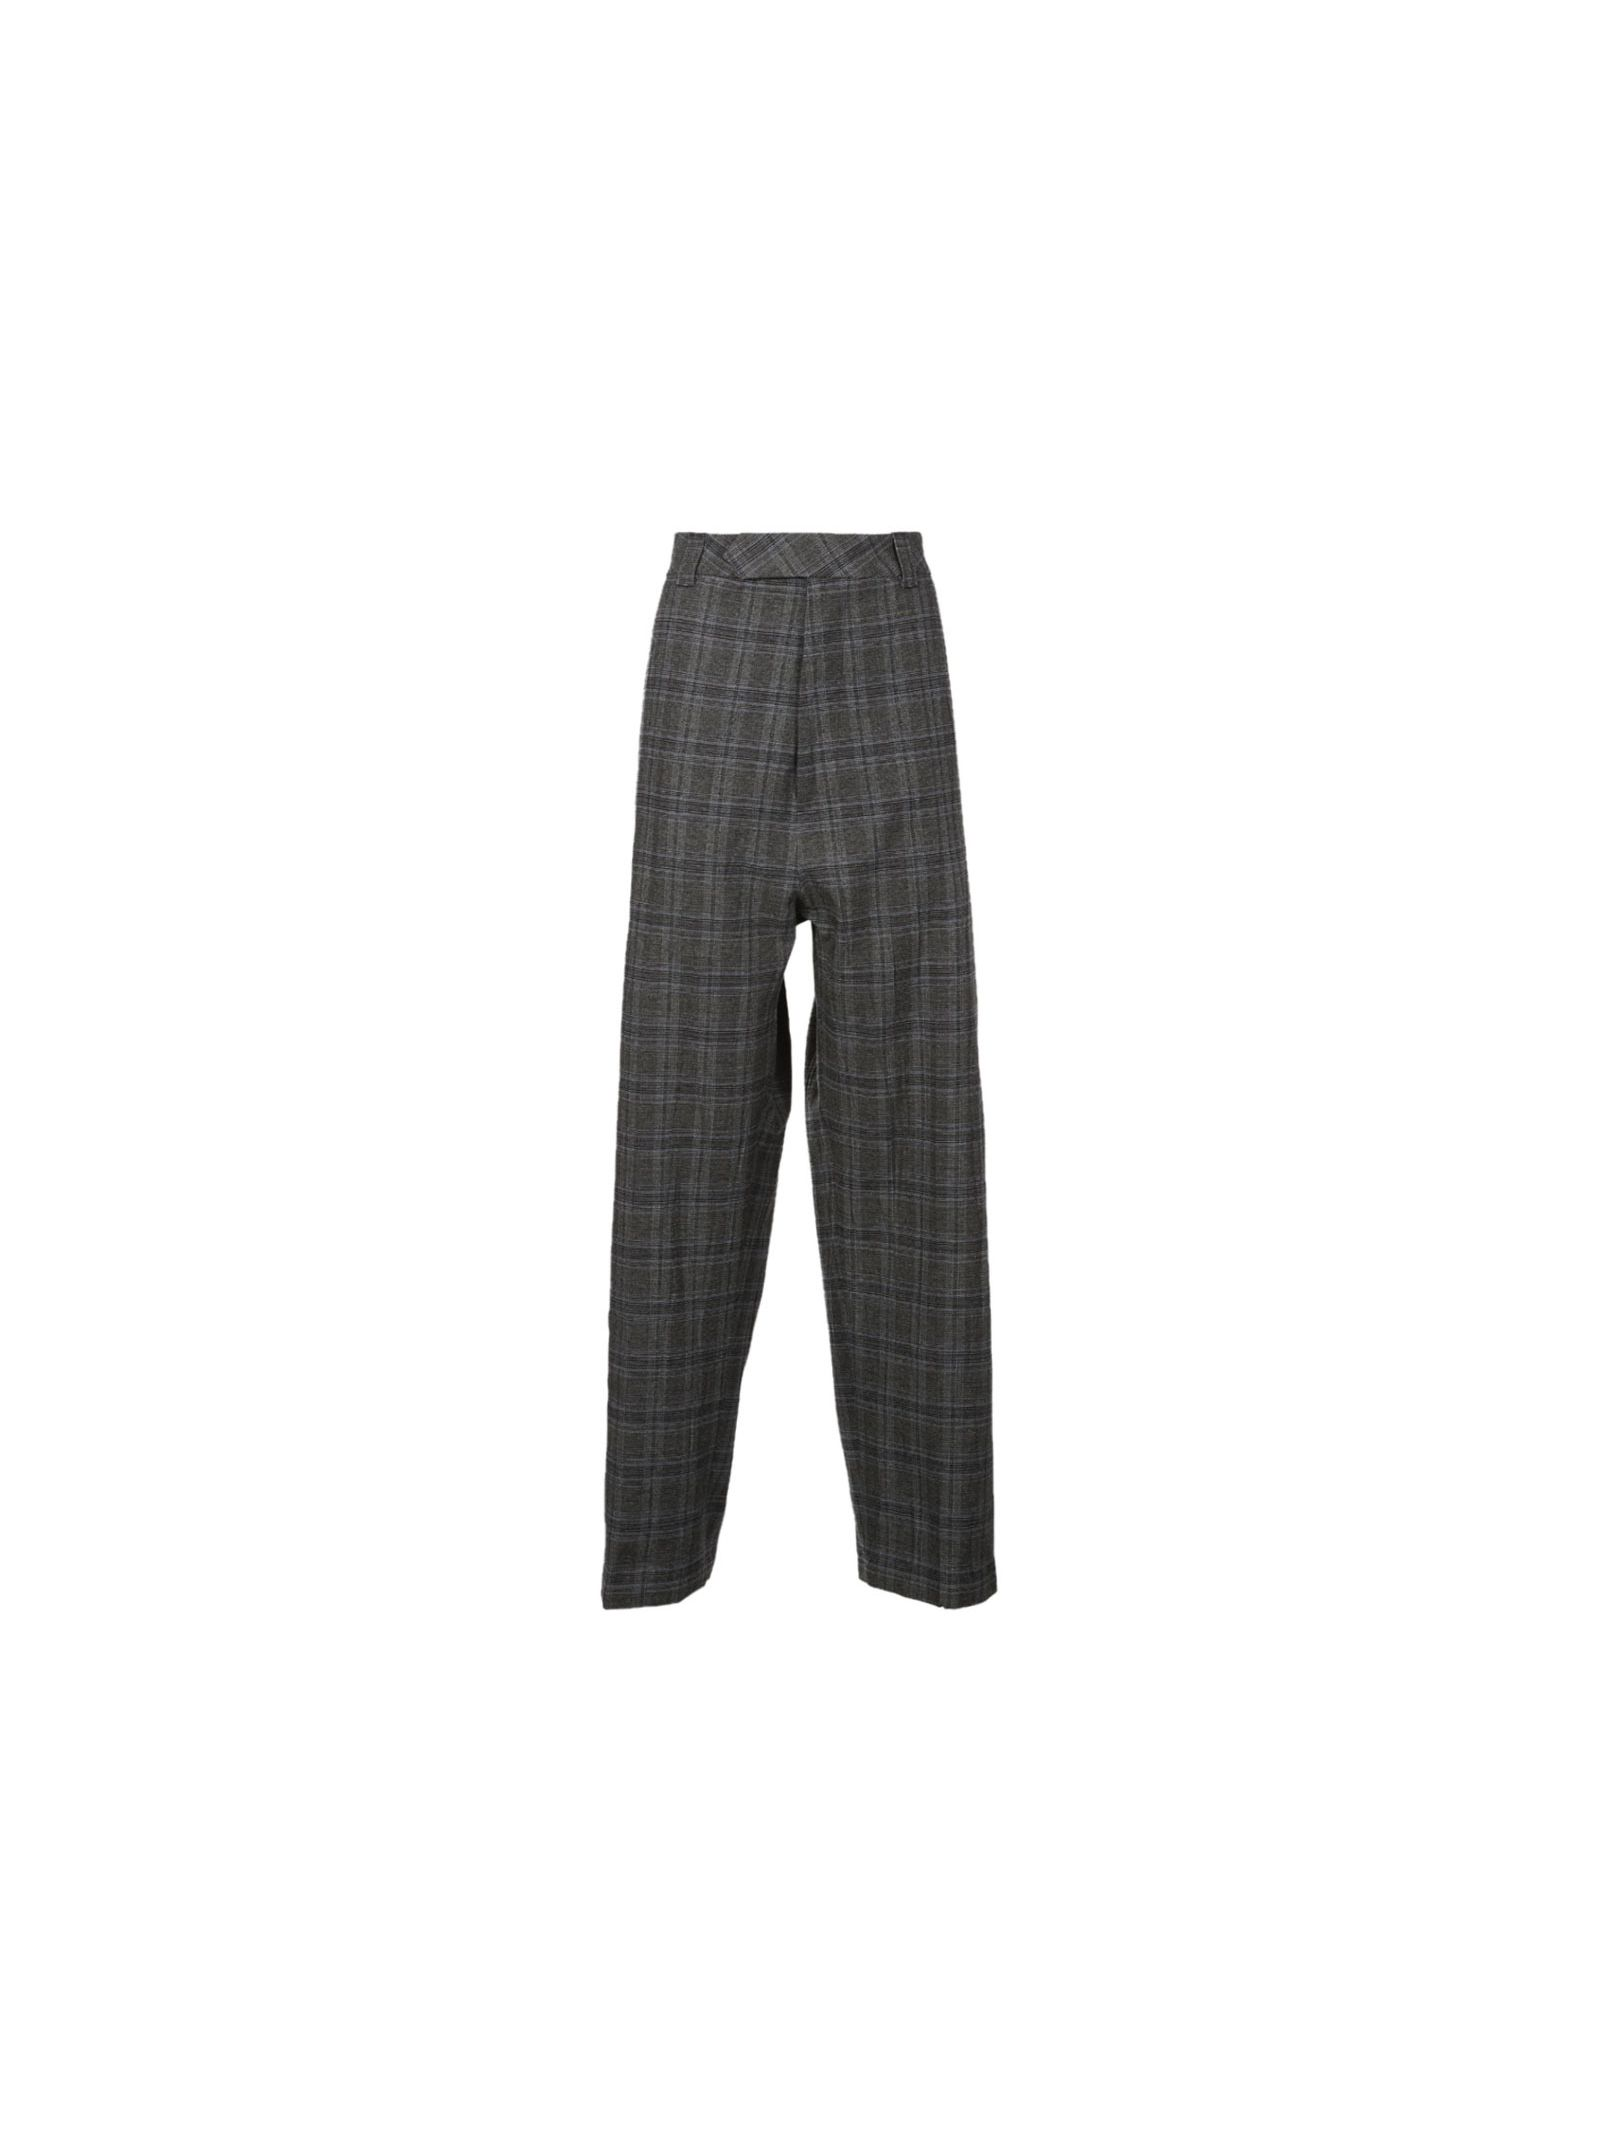 Baggy Suit Straight Checked Trousers from Vetements: Grey Baggy Suit Straight Checked Trousers with Concealed hook-and-eye and zip-fly front fastening, high-rise, belt loops, all-over check pattern, slip pockets, pressed entre crease at front and back, jet